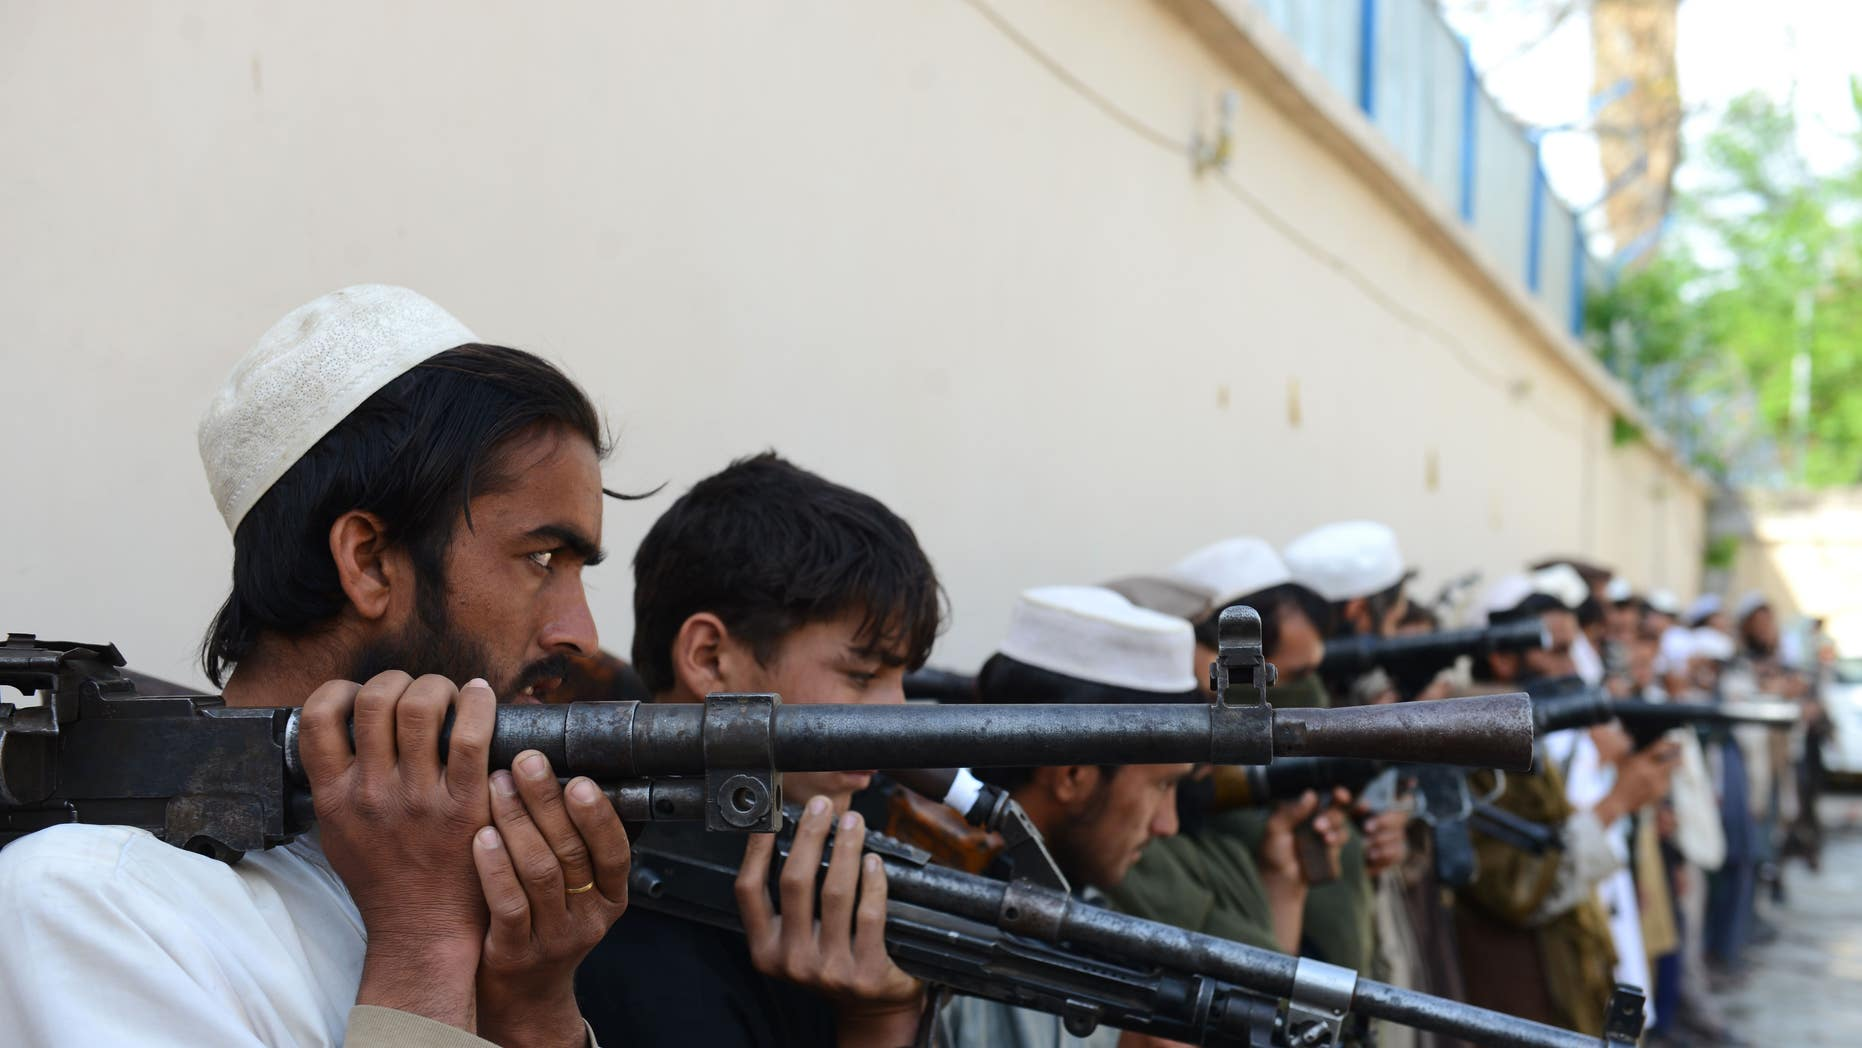 Taliban fighters hold their weapons before surrendering them to Afghan authorities in Jalalabad, Afghanistan, on March 27, 2016.